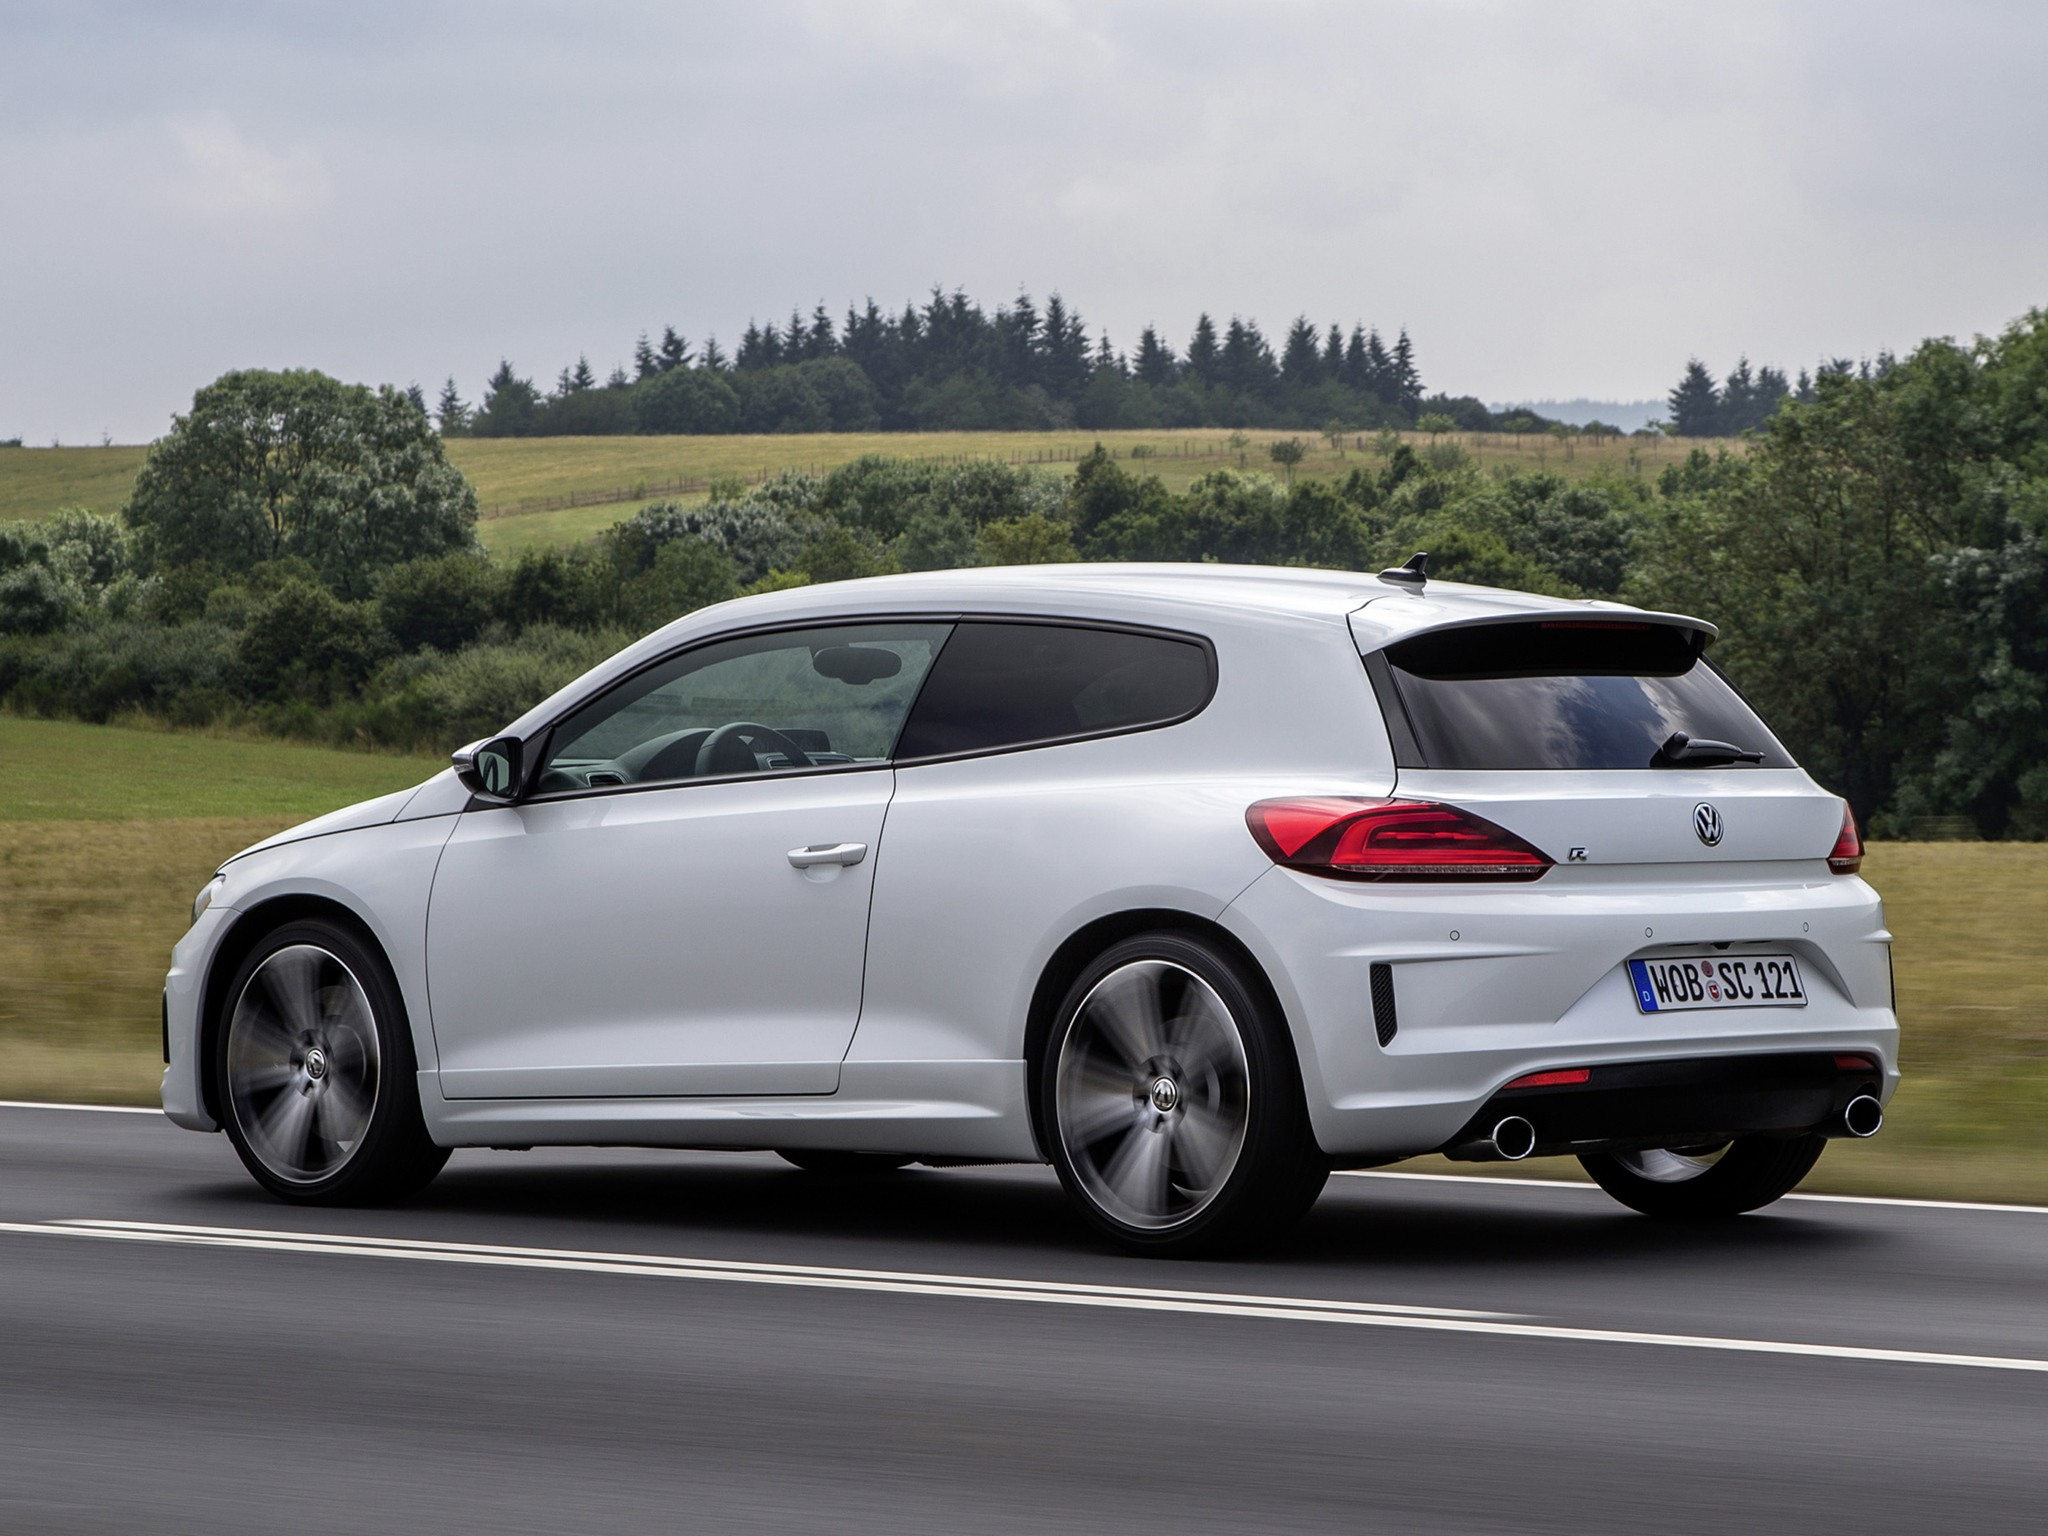 volkswagen scirocco r specs photos 2014 2015 2016 2017 2018 autoevolution. Black Bedroom Furniture Sets. Home Design Ideas